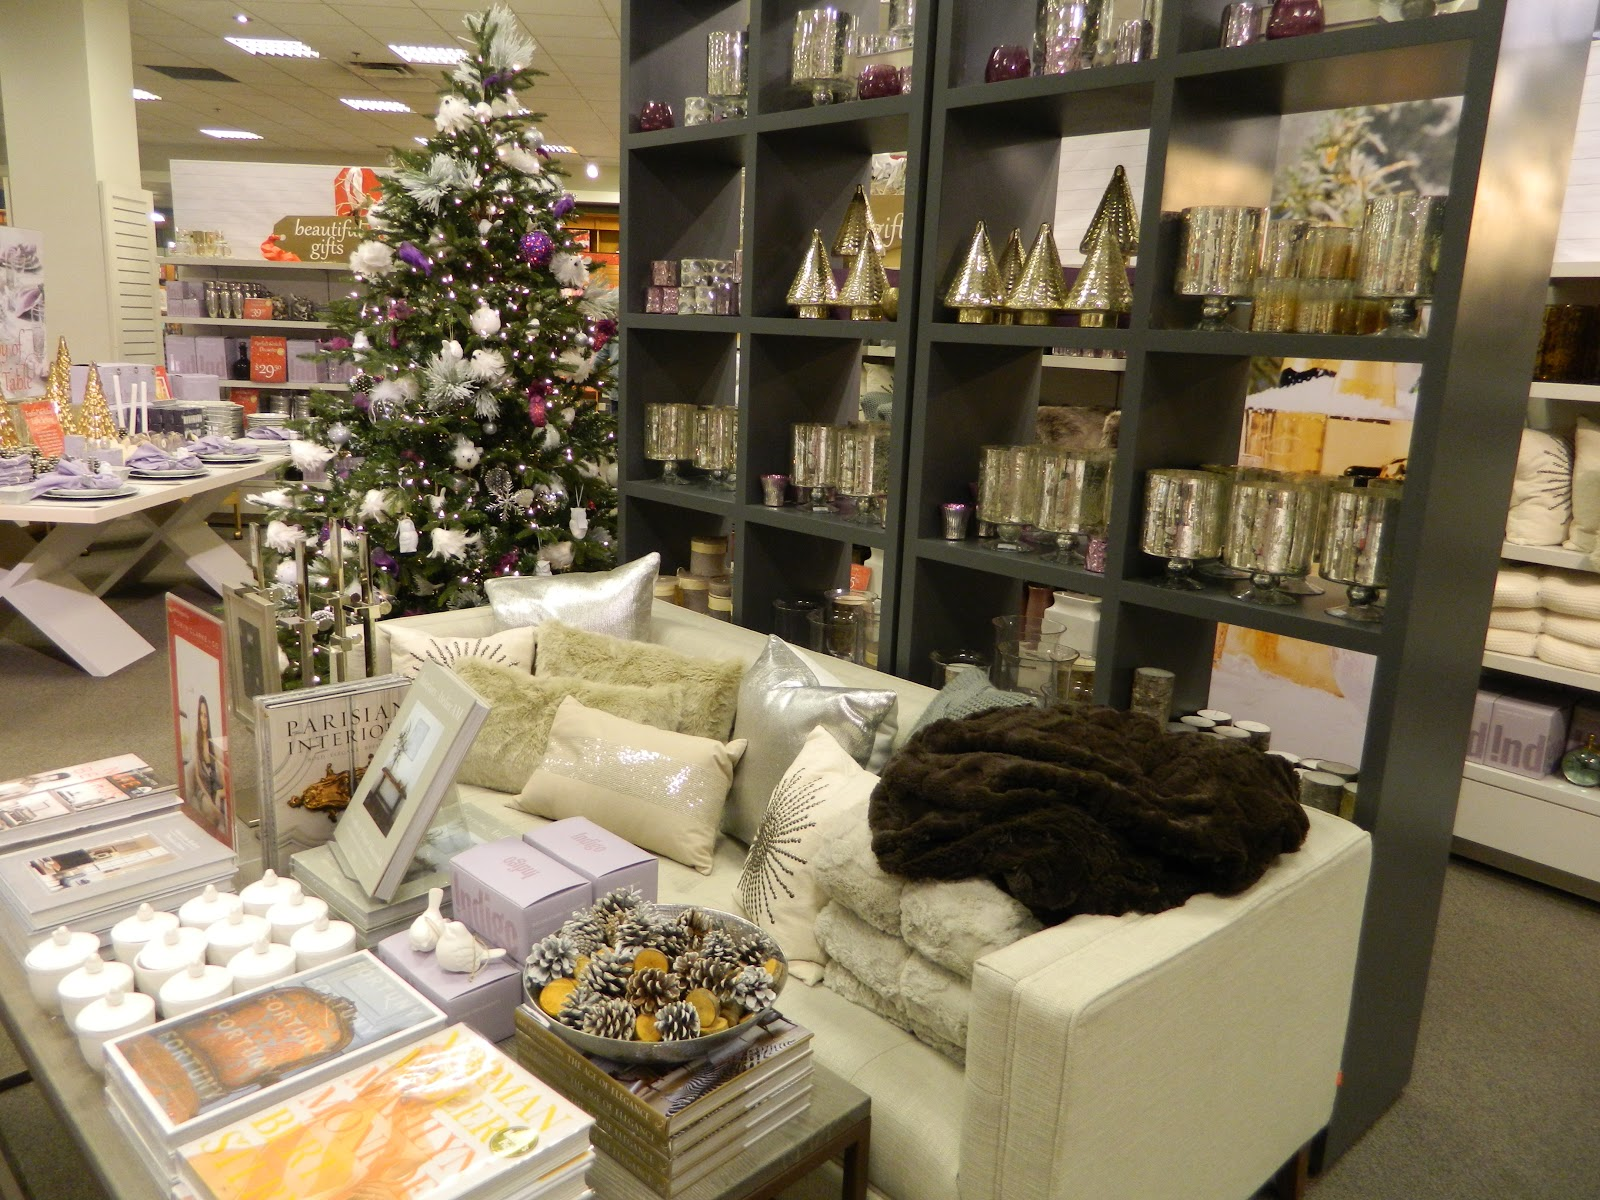 Chapters Indigo Bookstore On Bay St Toronto Went All Out This Year By Decoration Their Store With Numerous Christmas Trees I Thank Them For Allowing Me To